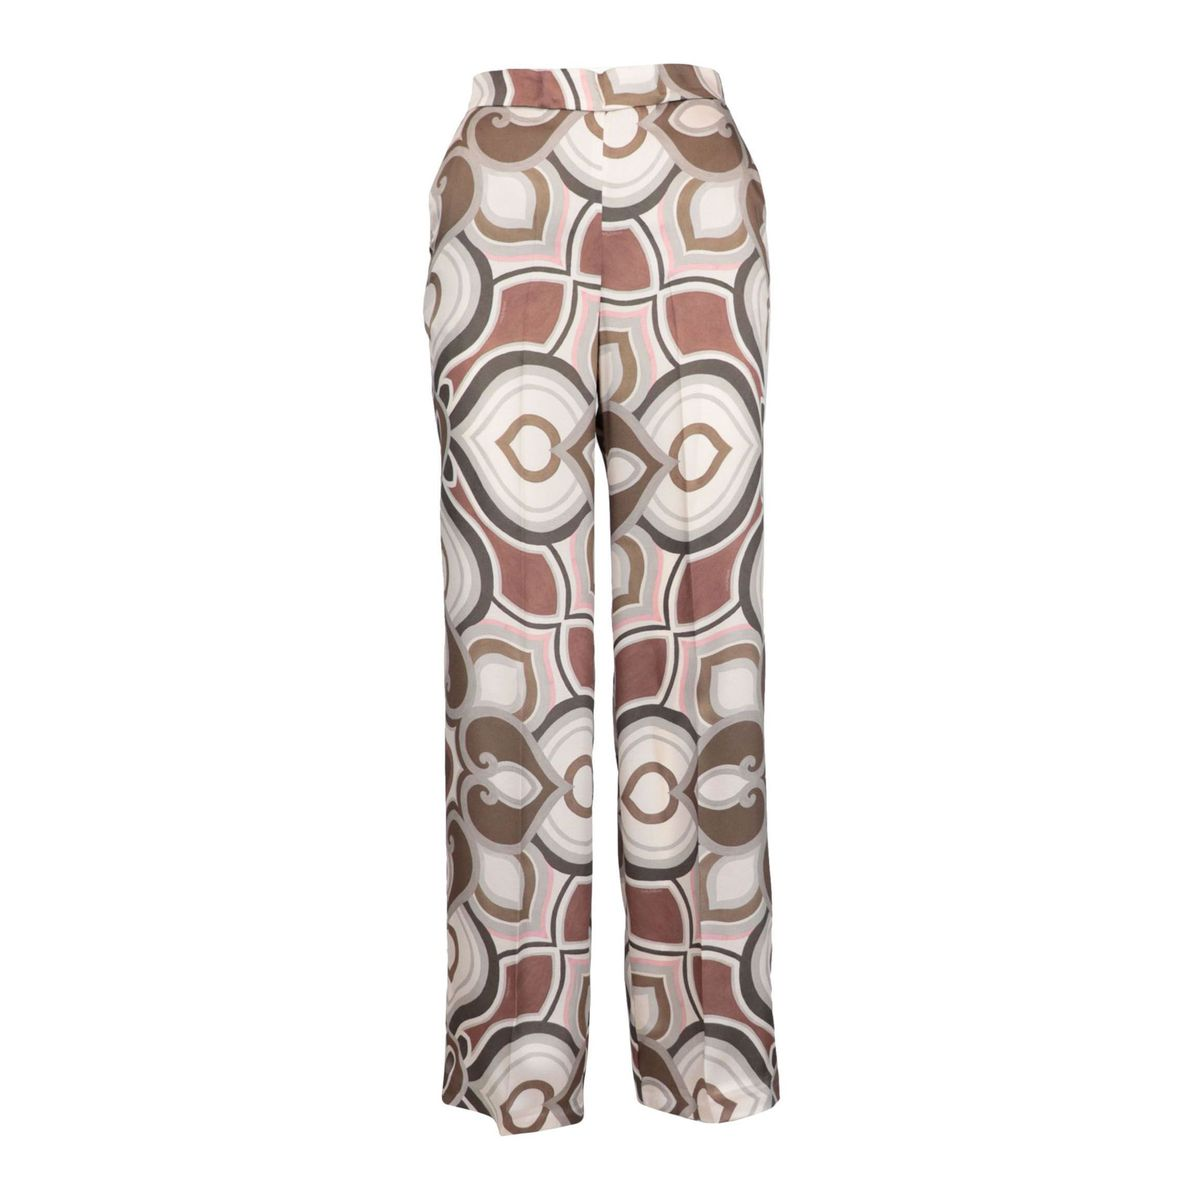 Satin-effect tube trousers with patterned print and ironed crease Beige / dark Maliparmi